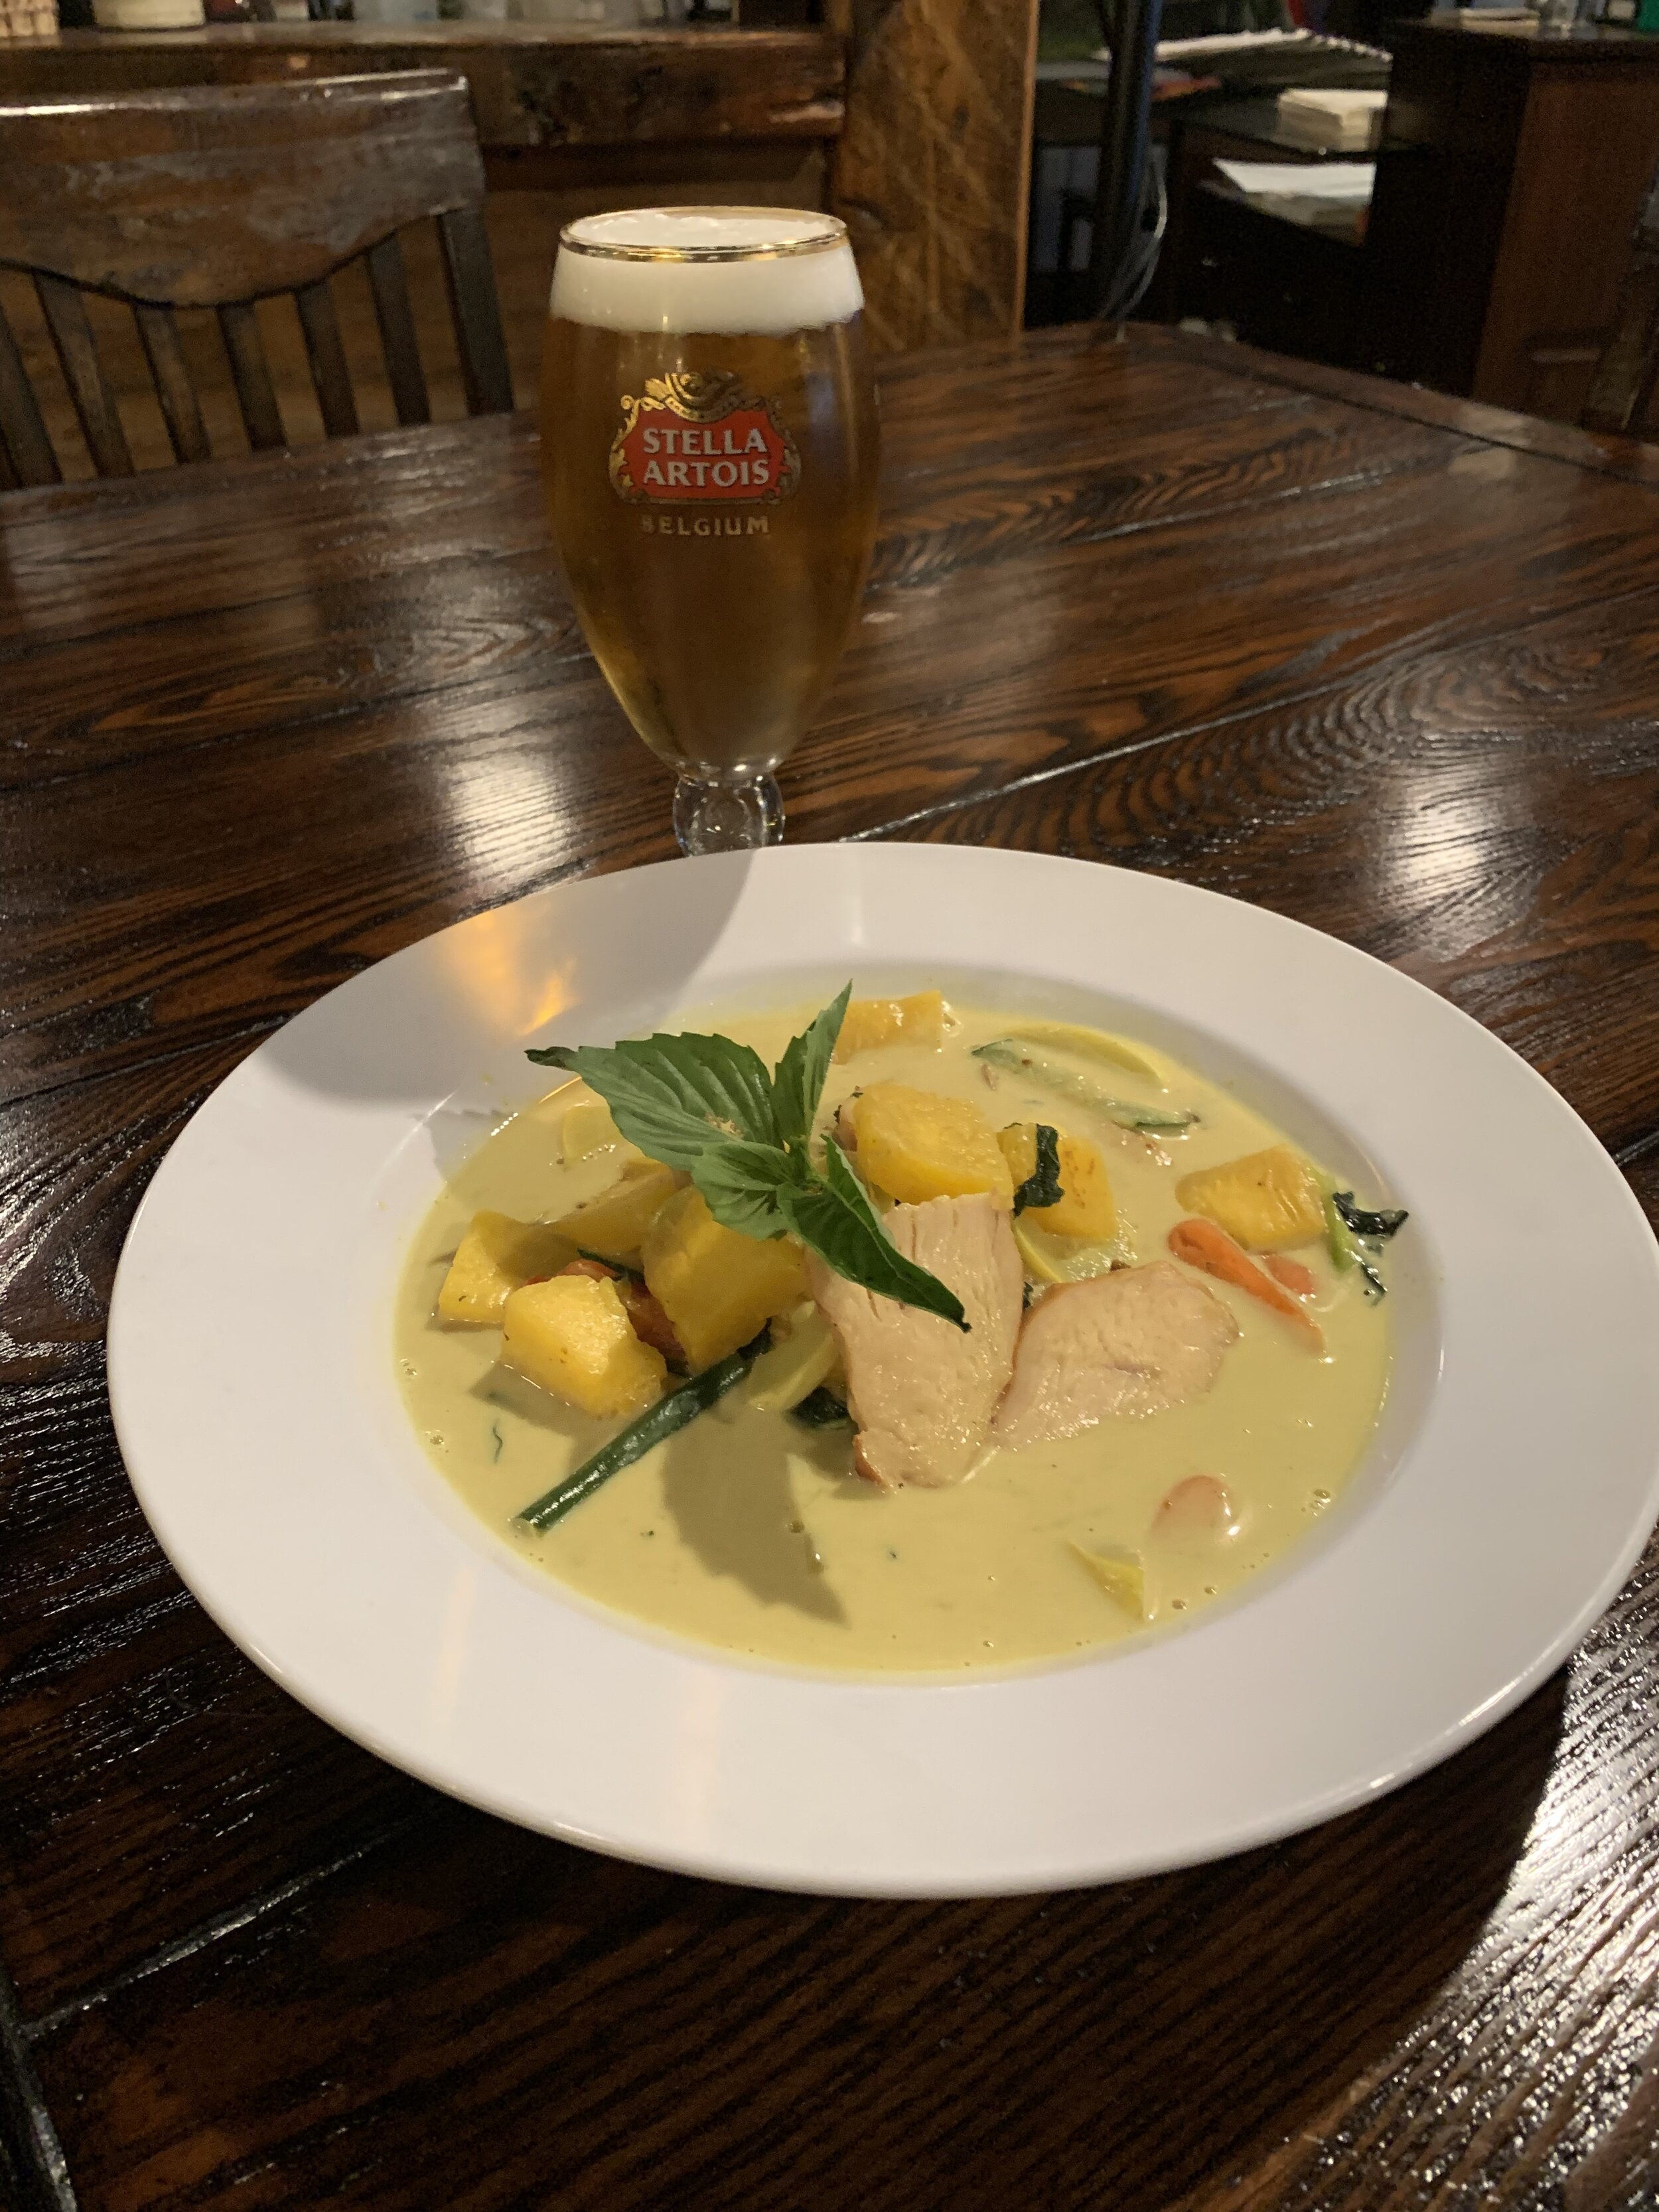 Daly's Restaurant - Dinner - $25Fall Curry Bowl - Roasted turkey yellow curry maple bowl with fall vegetables including pumpkin, squash, and zucchiniFabiano Beverage - Stella Artois